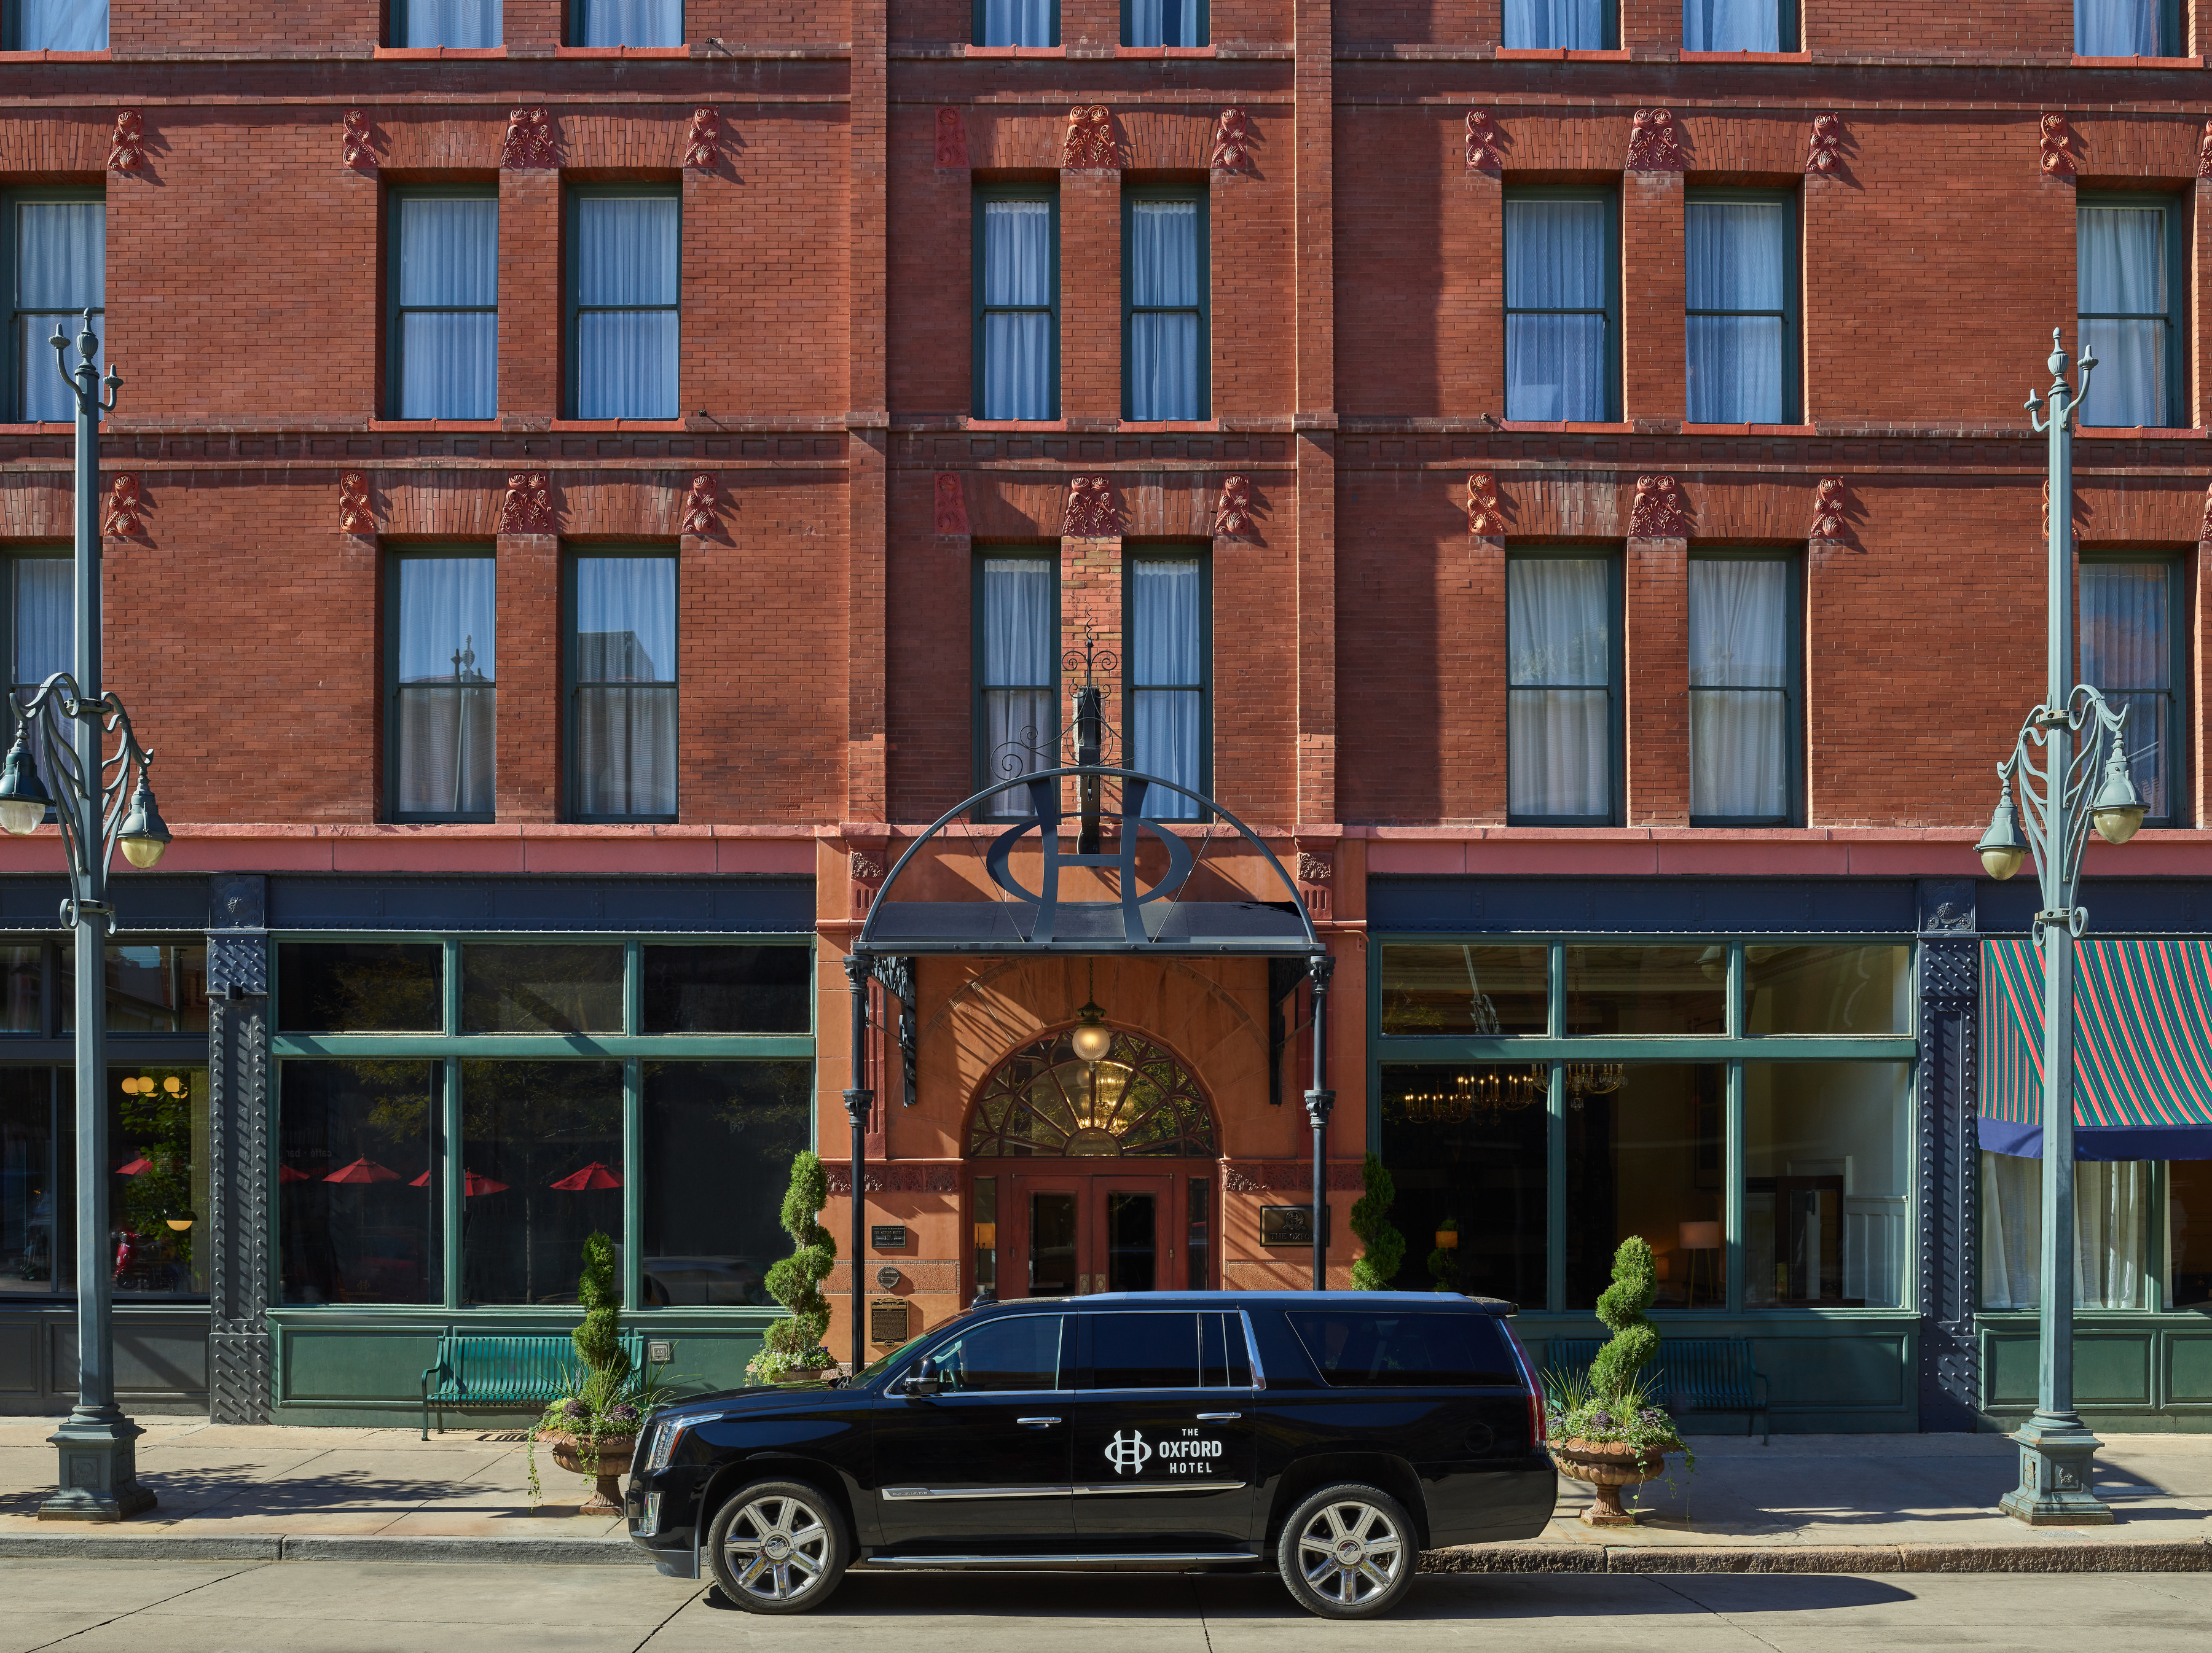 Iconic Denver Hotel | The Oxford Hotel